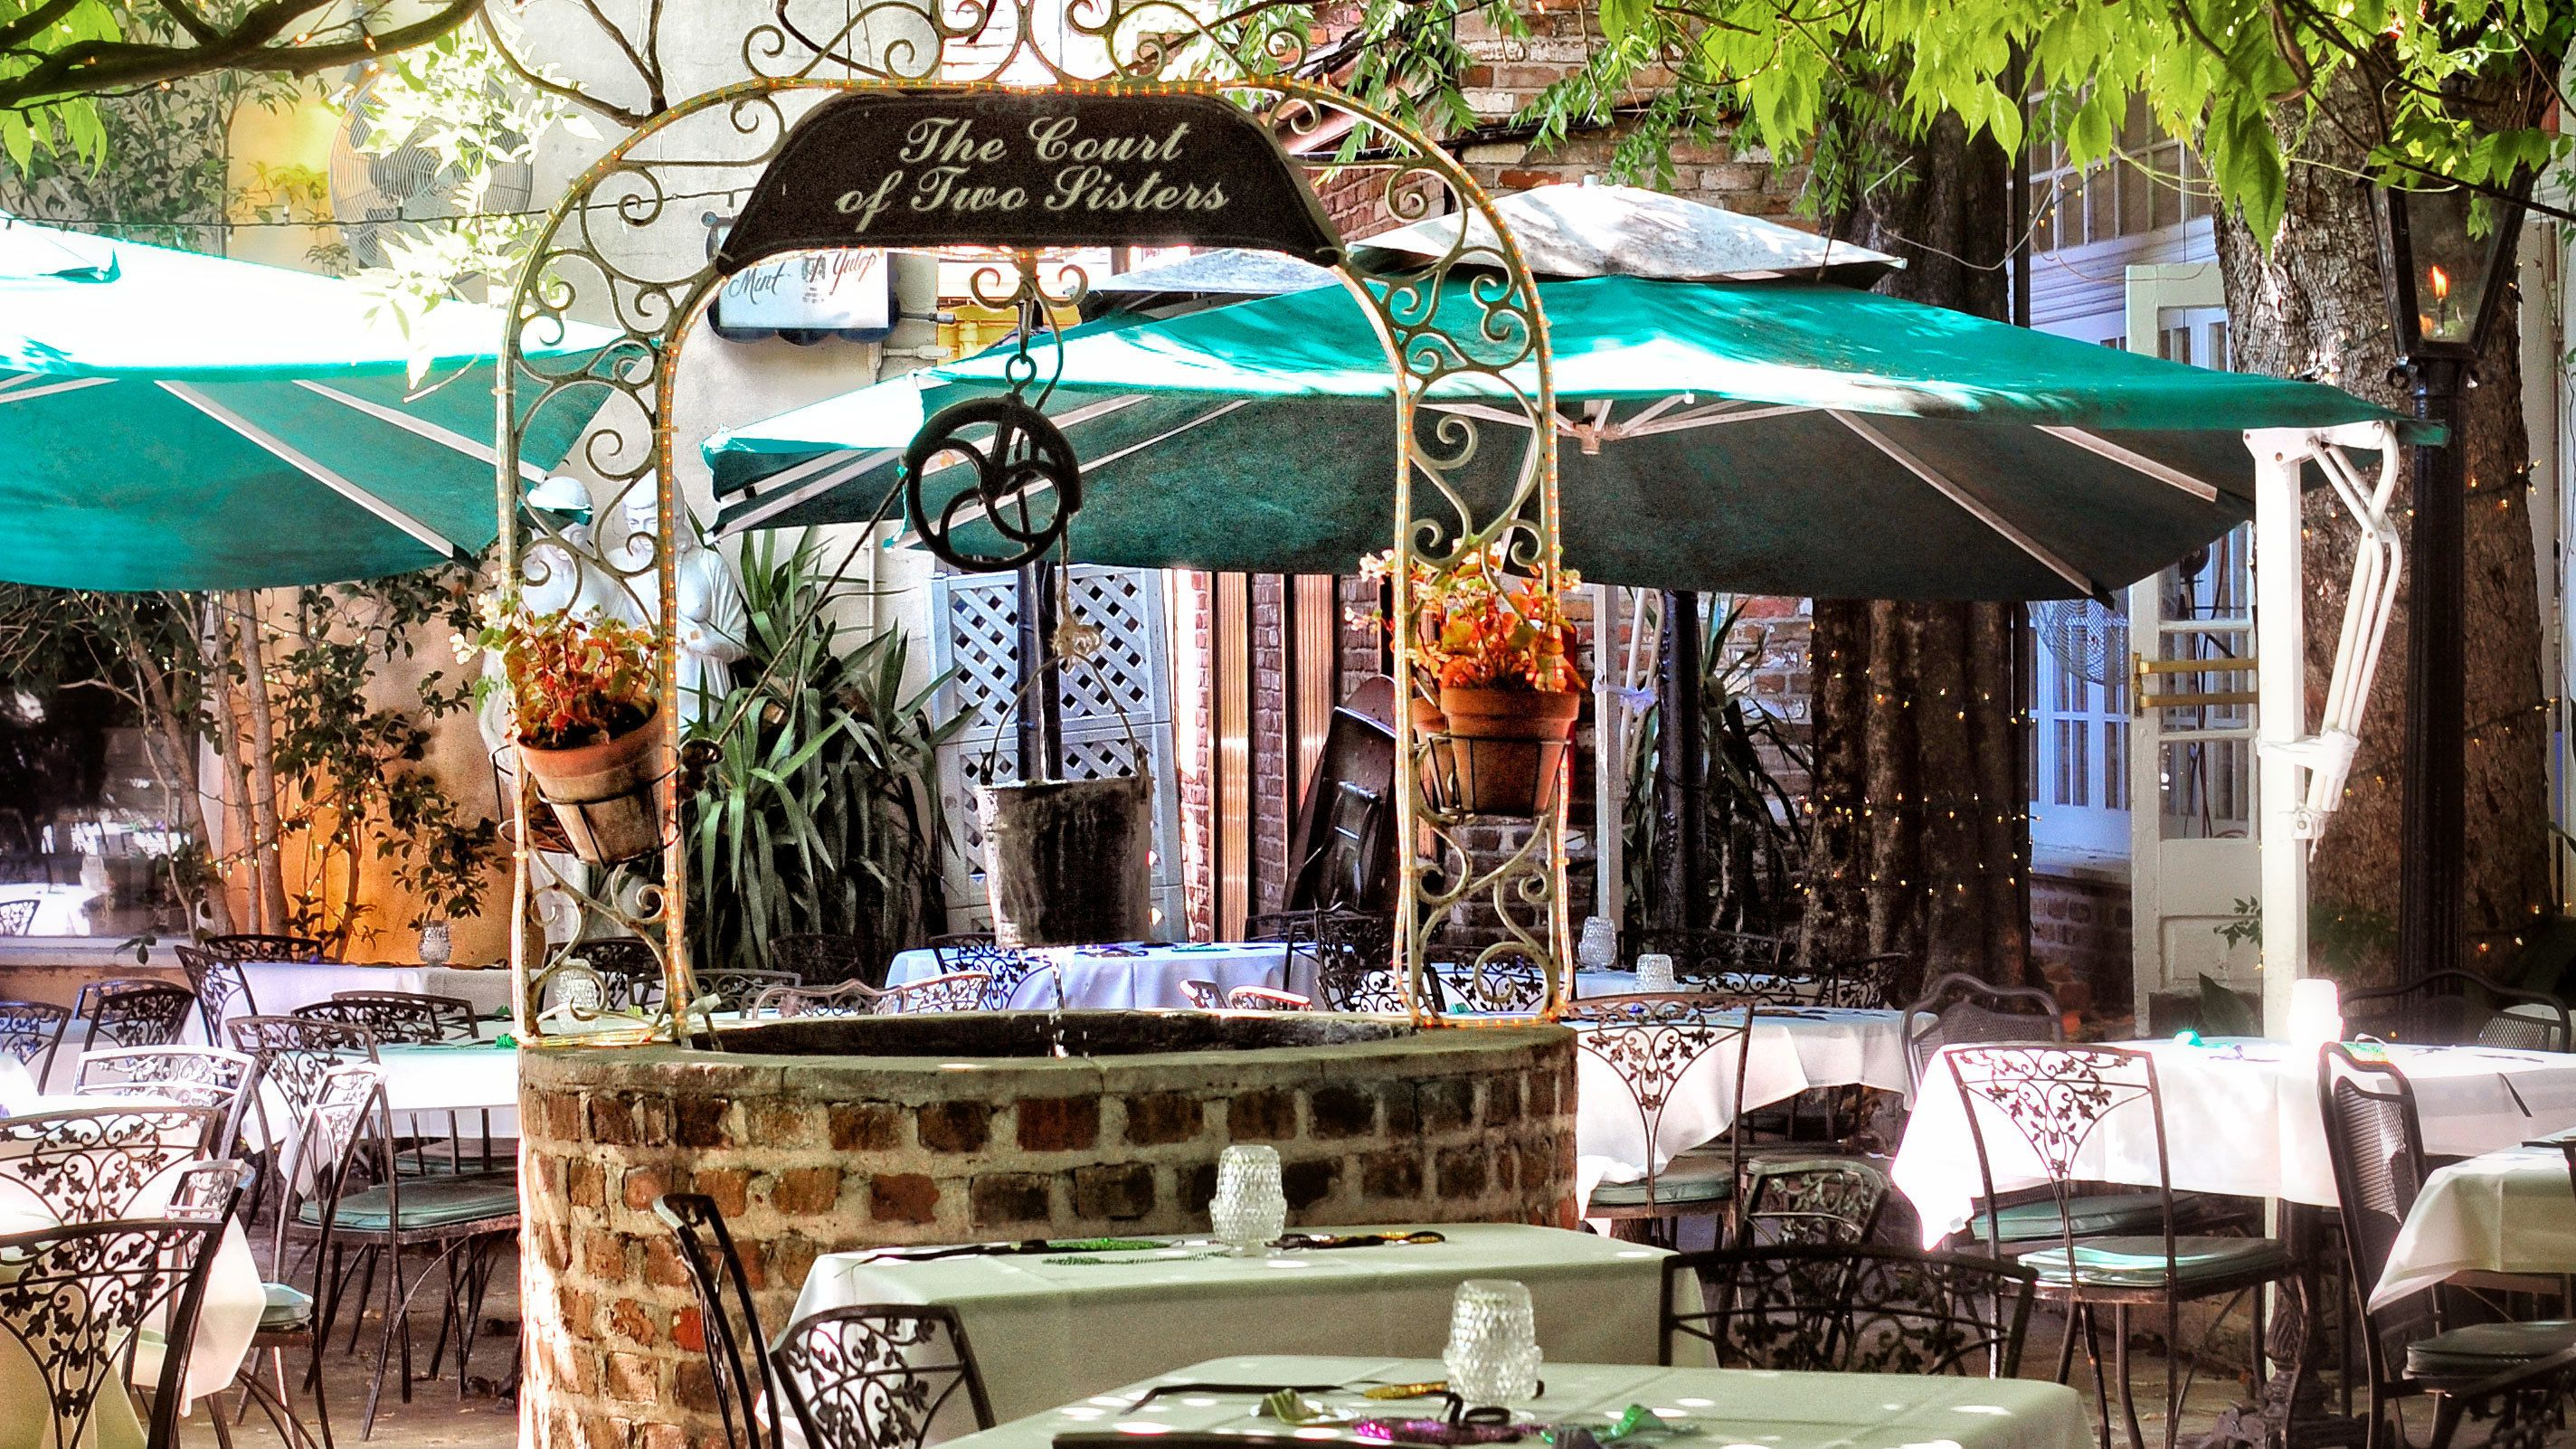 outdoor terrace dinning at Court of Two Sisters in New Orleans